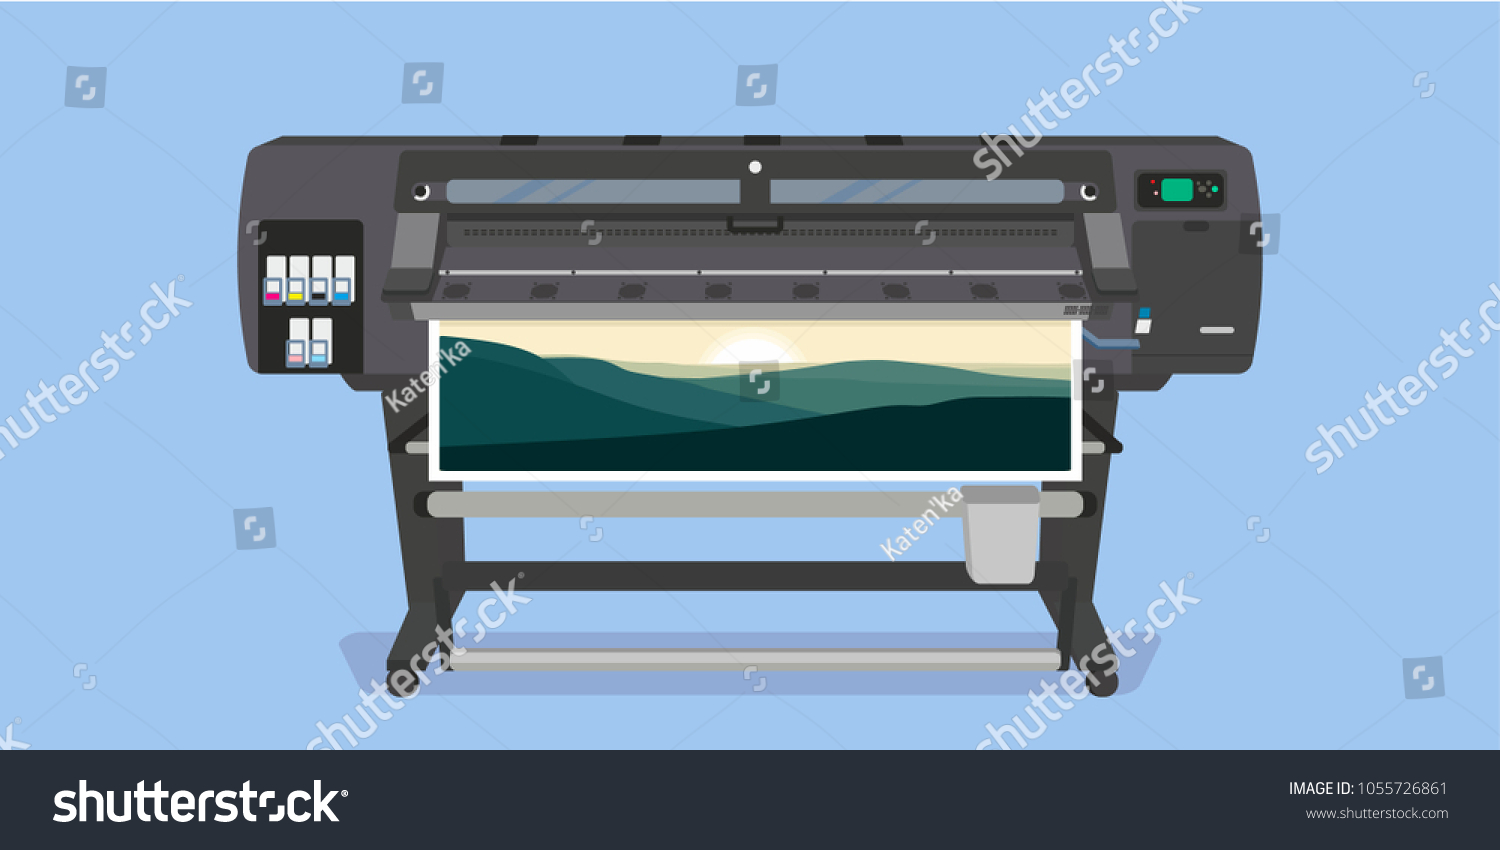 large format full color latex printer stock vector royalty free 1055726861 https www shutterstock com image vector large format full color latex printer 1055726861